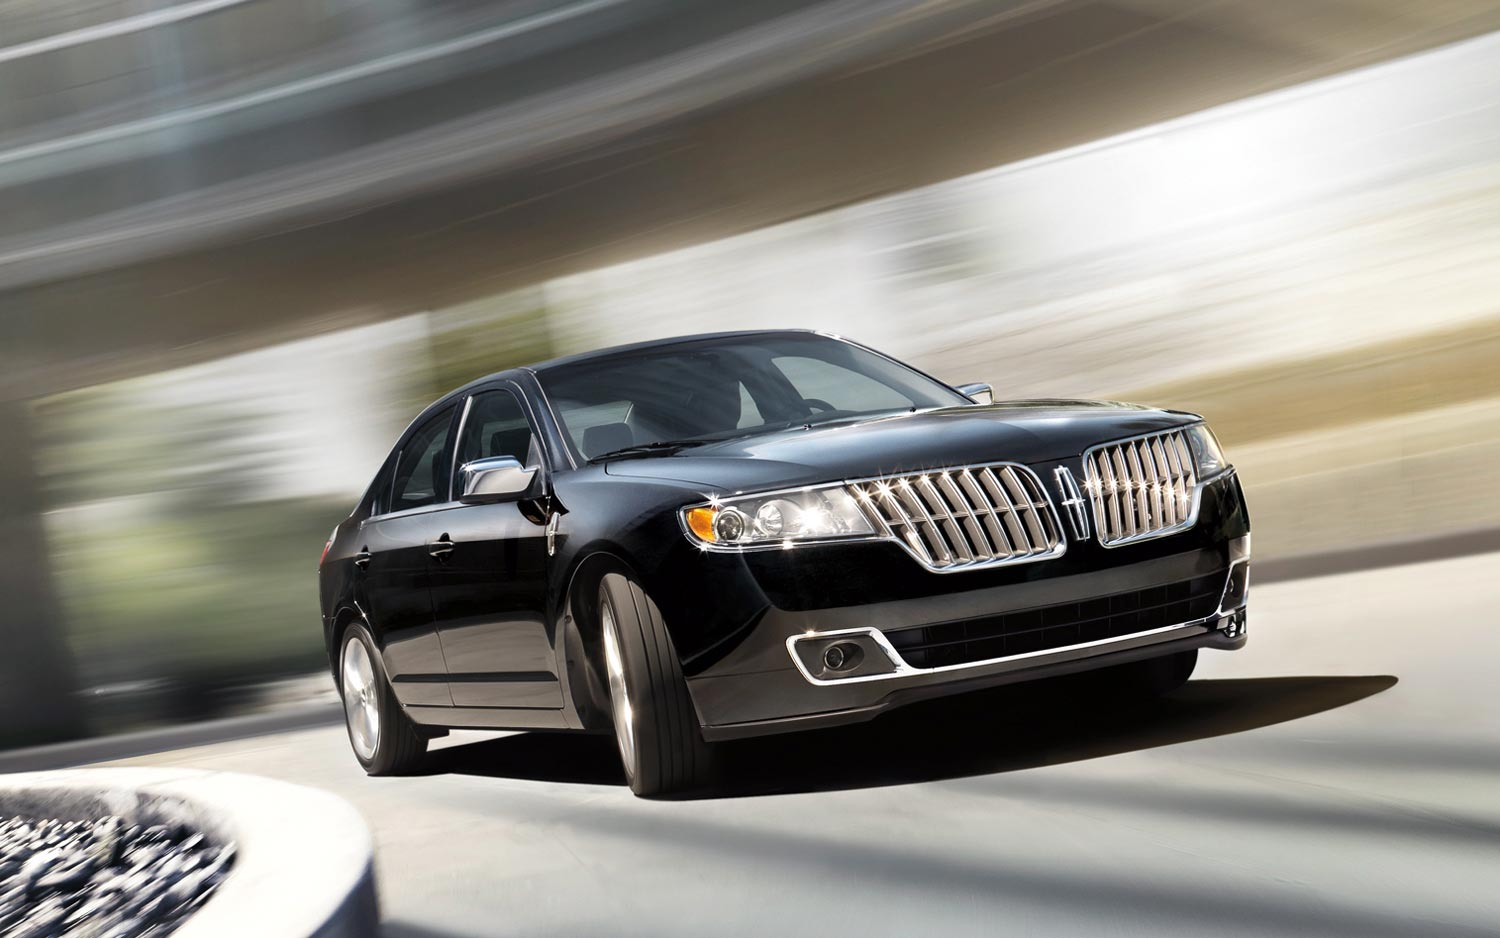 2012 Lincoln Mkz #6